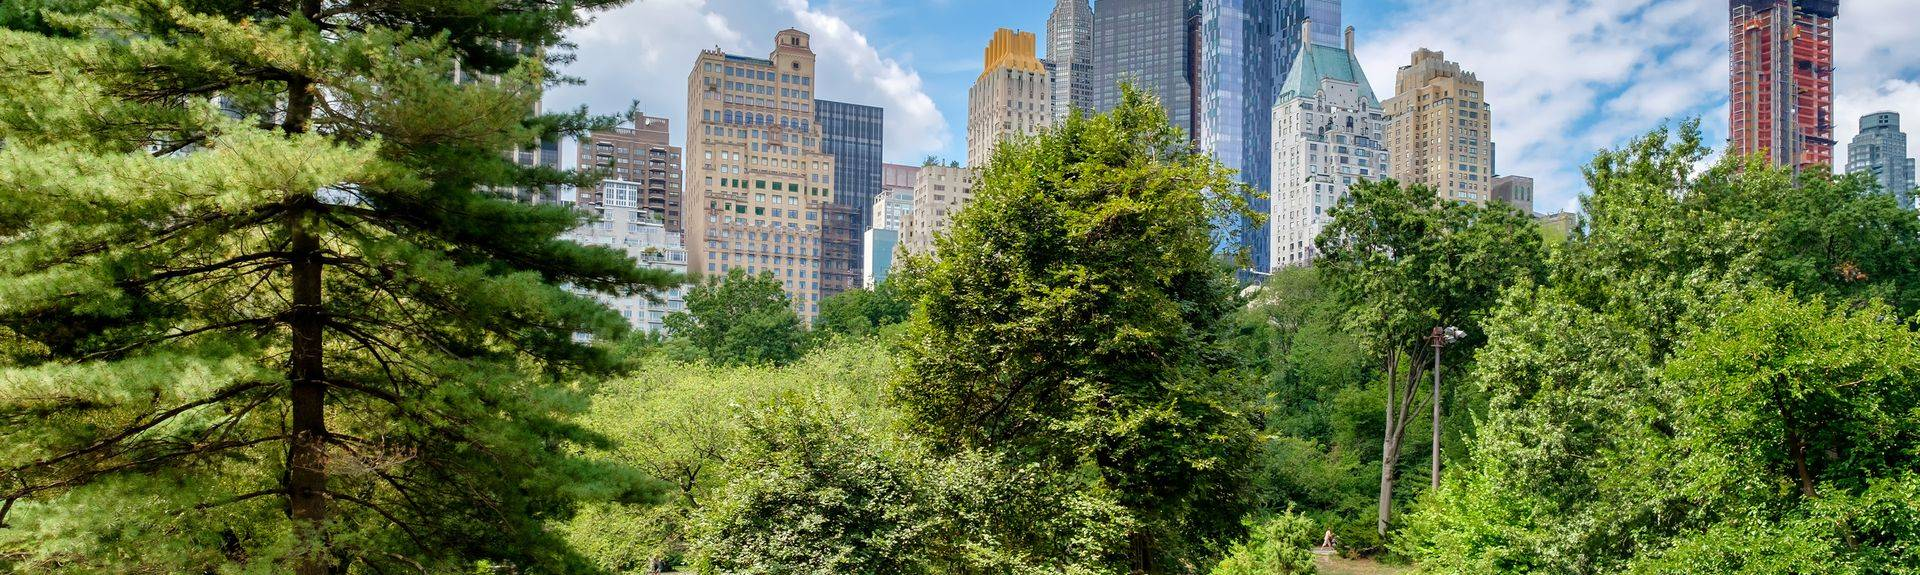 NYC DENTAL WELLNESS CENTER, 200 Central Park South, Suite 109, NEW YORK, NY, 10019, United States